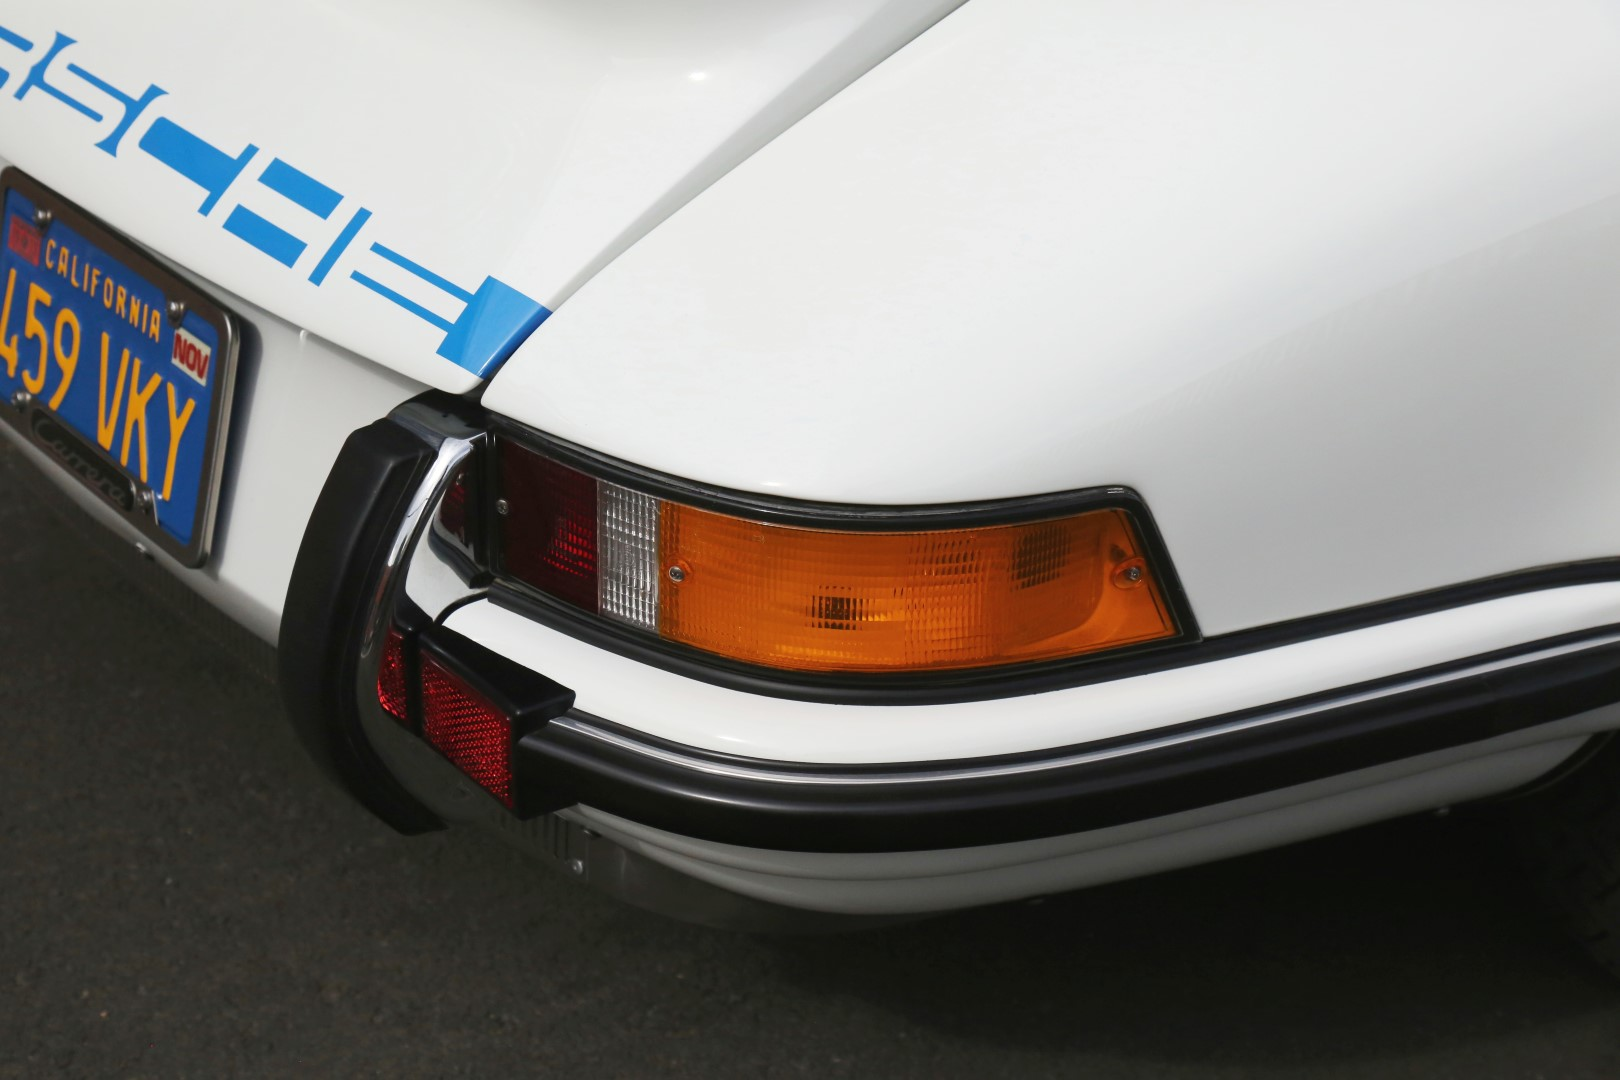 Porsche-911-Carrera-RS-2.7-1973-for-sale-8